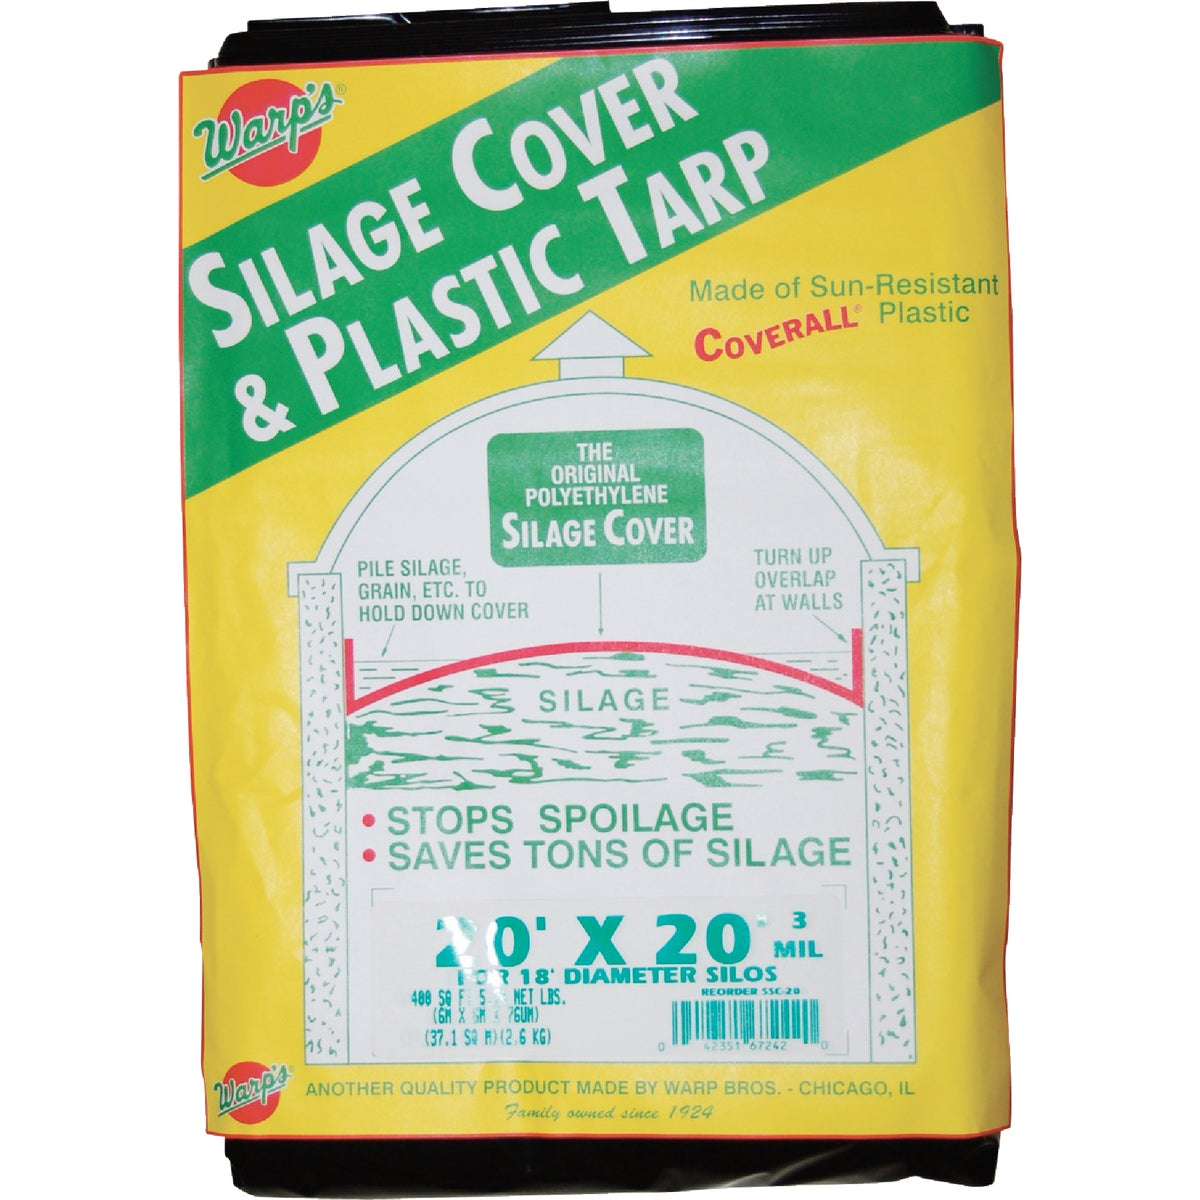 20X20 SILAGE COVER